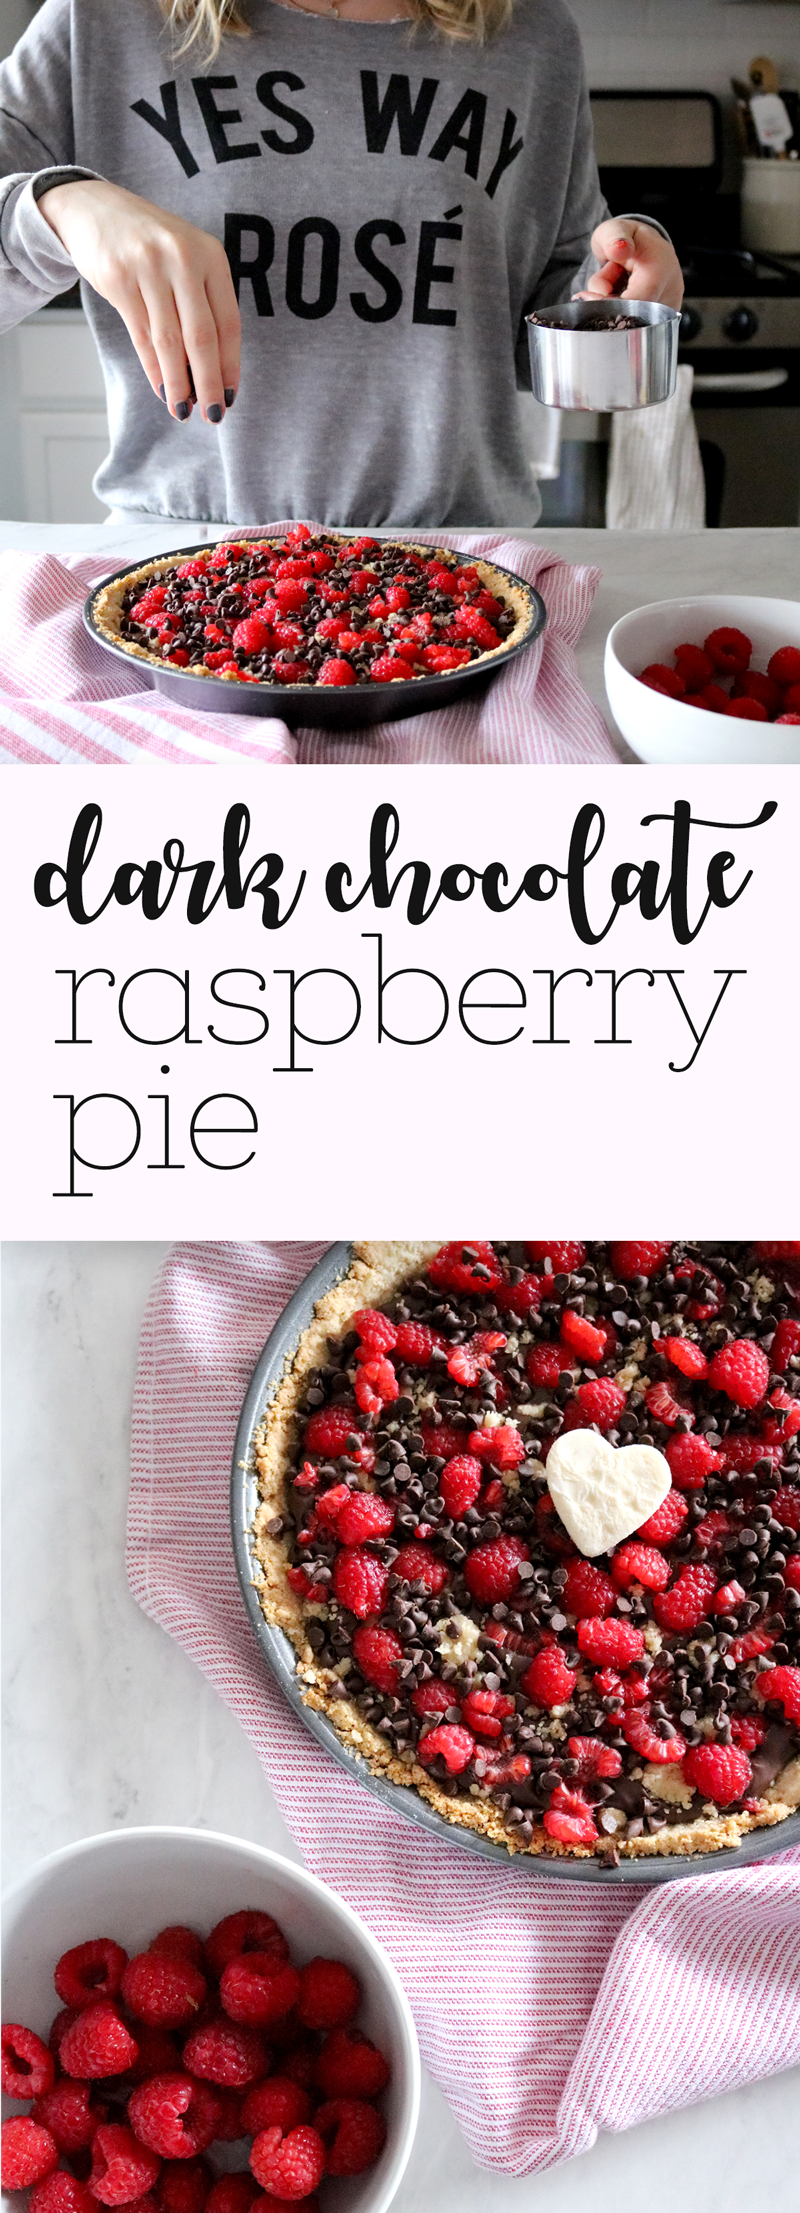 Dark Chocolate Raspberry Pie | via Pies Before Guys